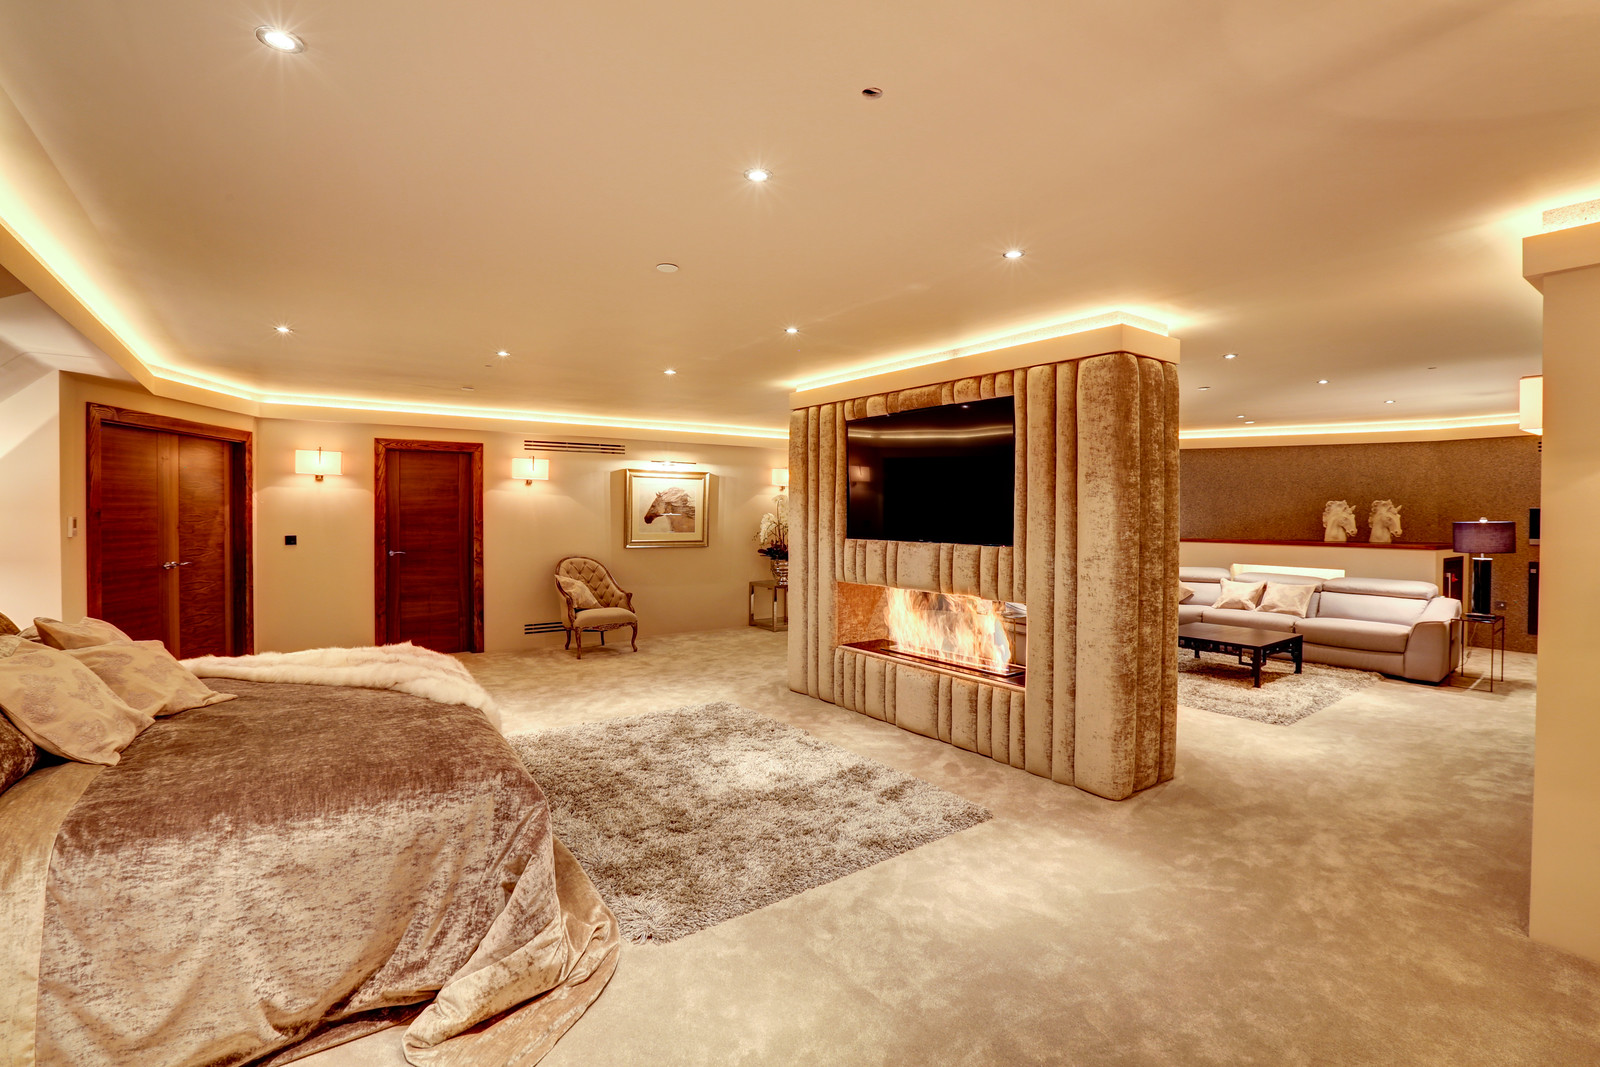 Master suite in Tanglewood, luxury home by Guy Phoenix in Colston Bassett, Nottinghamshire